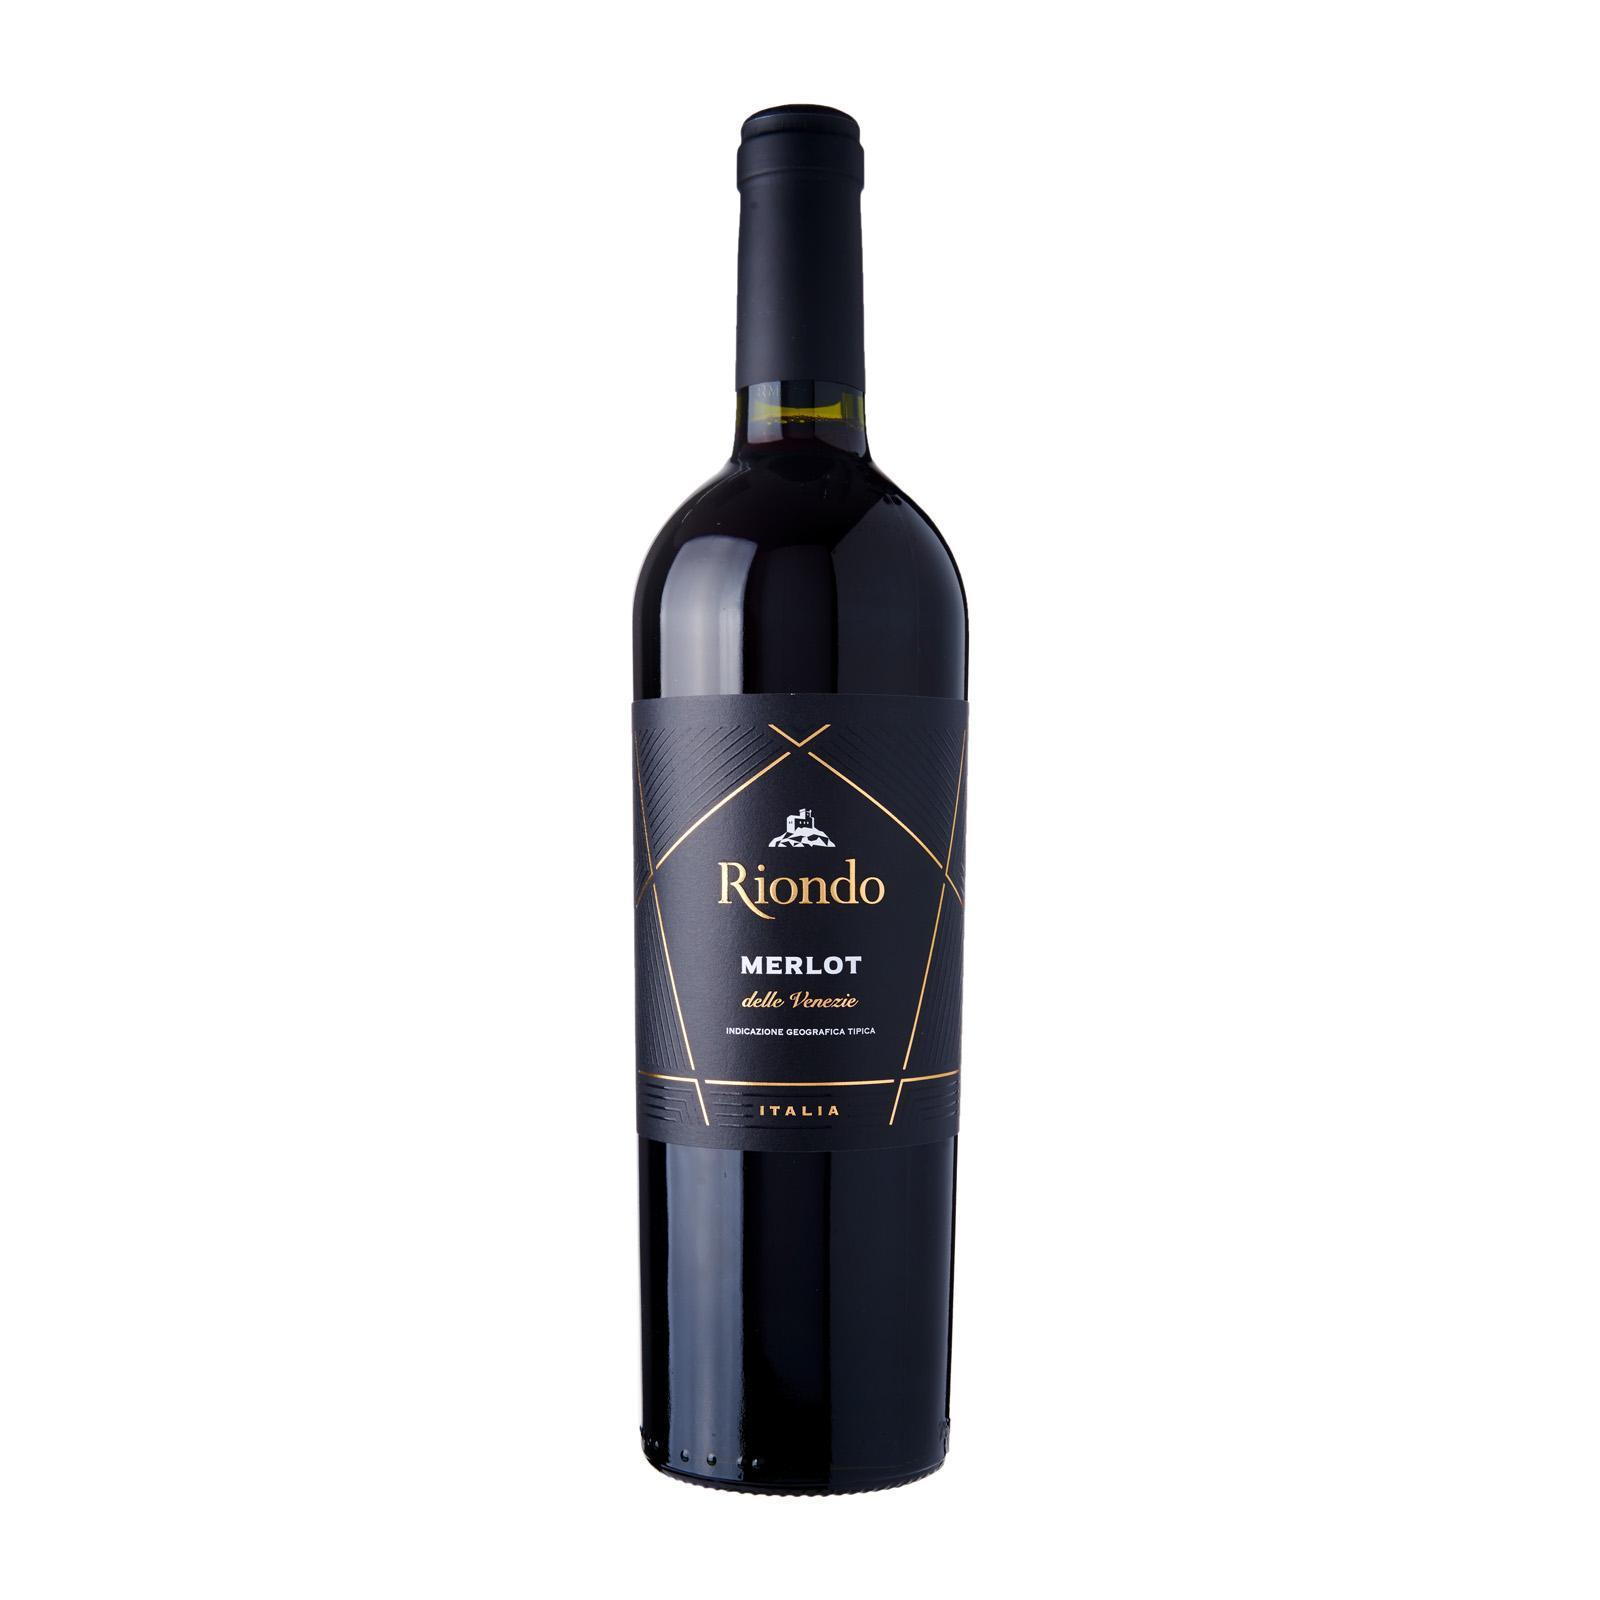 Riondo Merlot IGT - By Wines4you